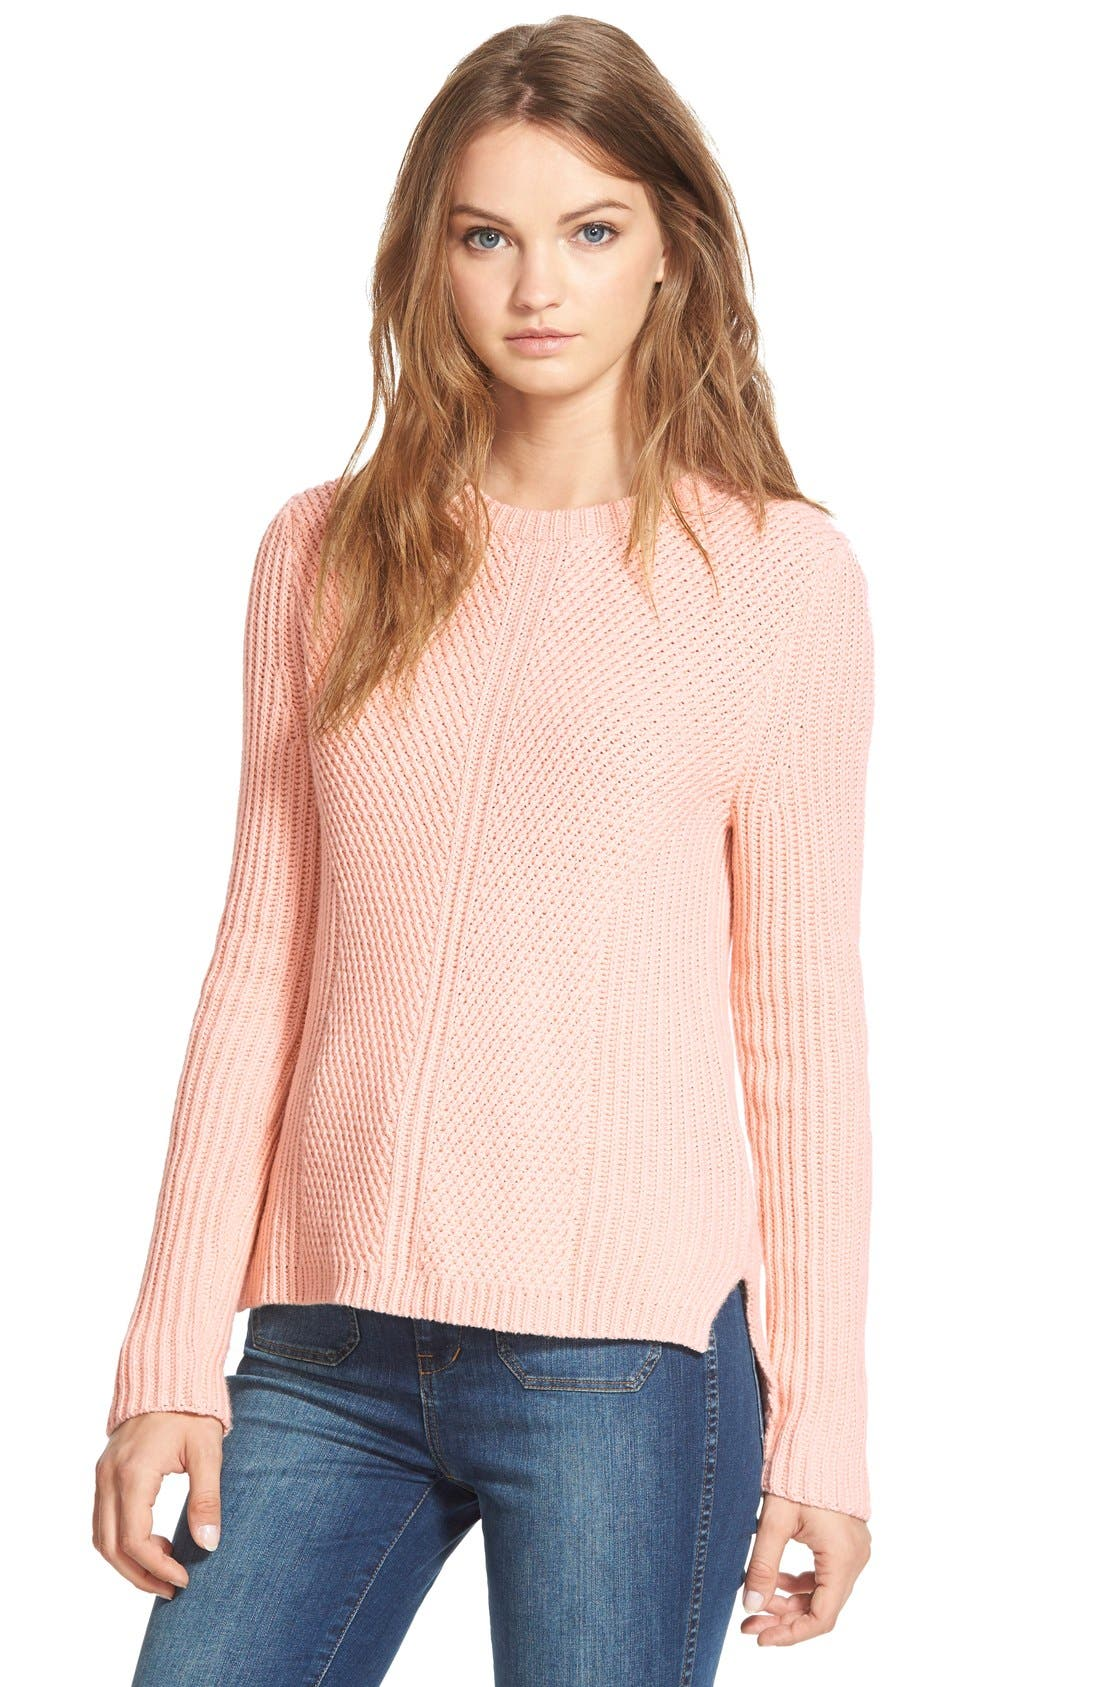 Alternate Image 1 Selected - Madewell 'Holcomb' Texture Sweater